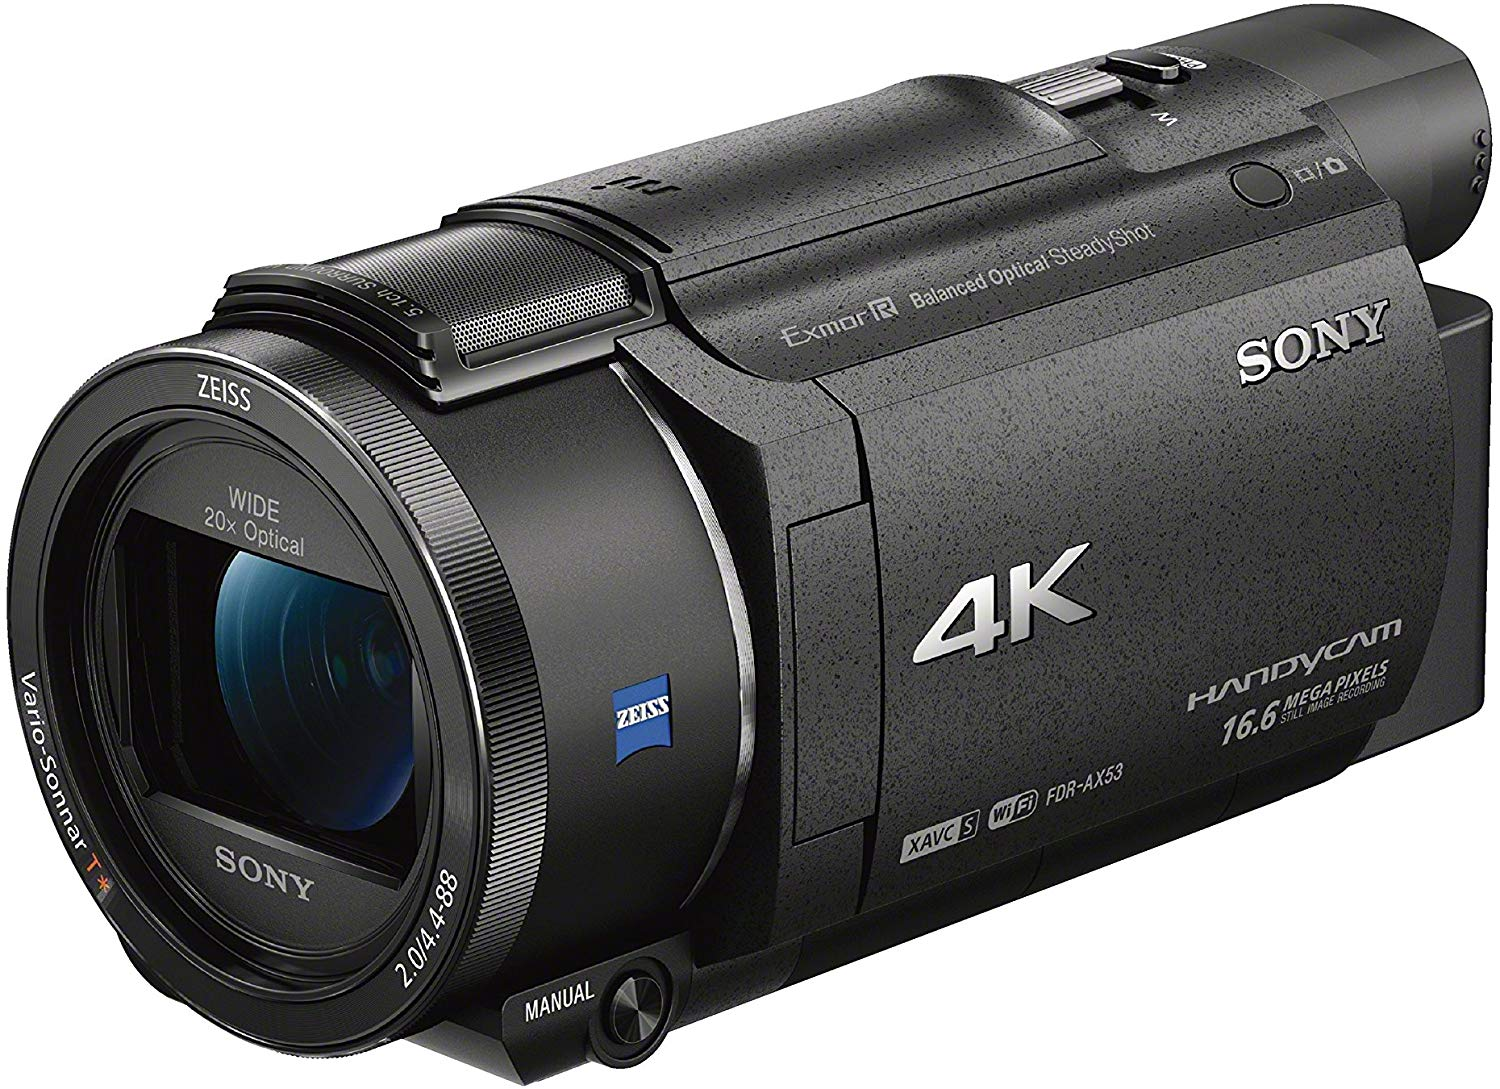 Sony FDRAX53/B Review